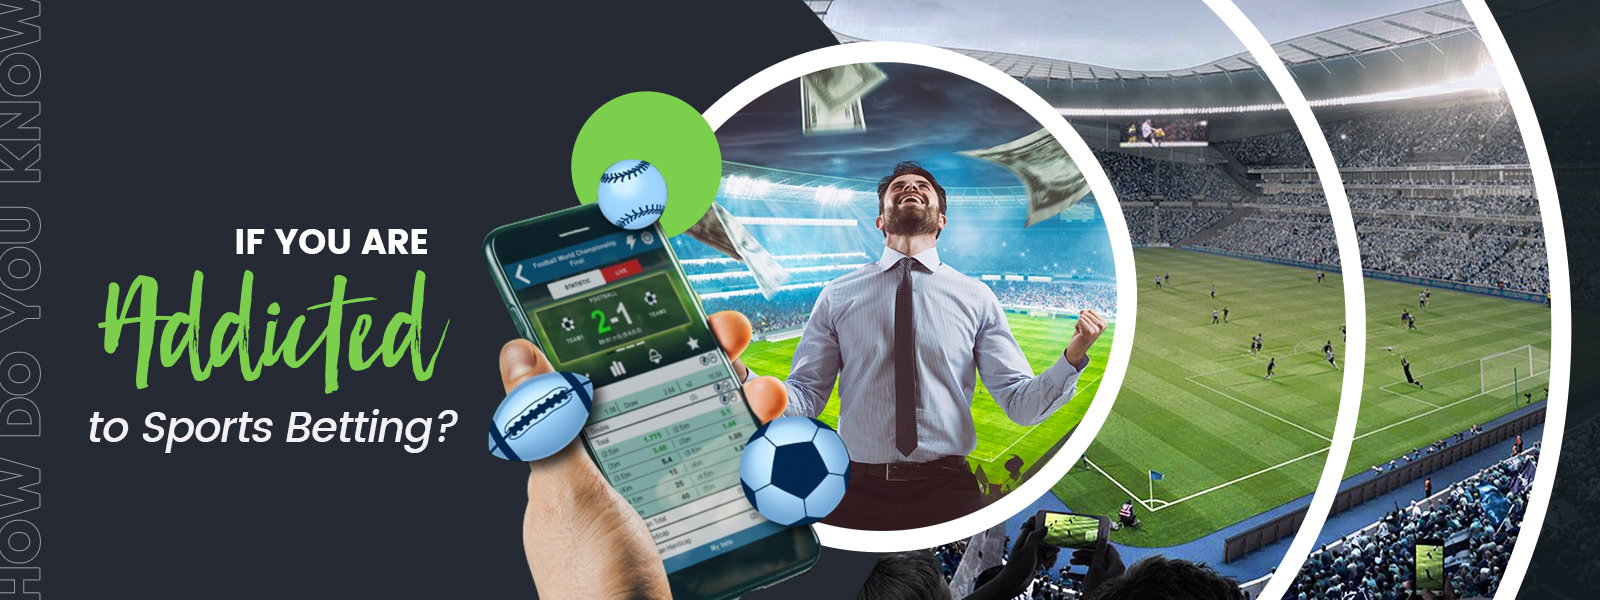 How Do You Know If You Are Addicted To Sports Betting?